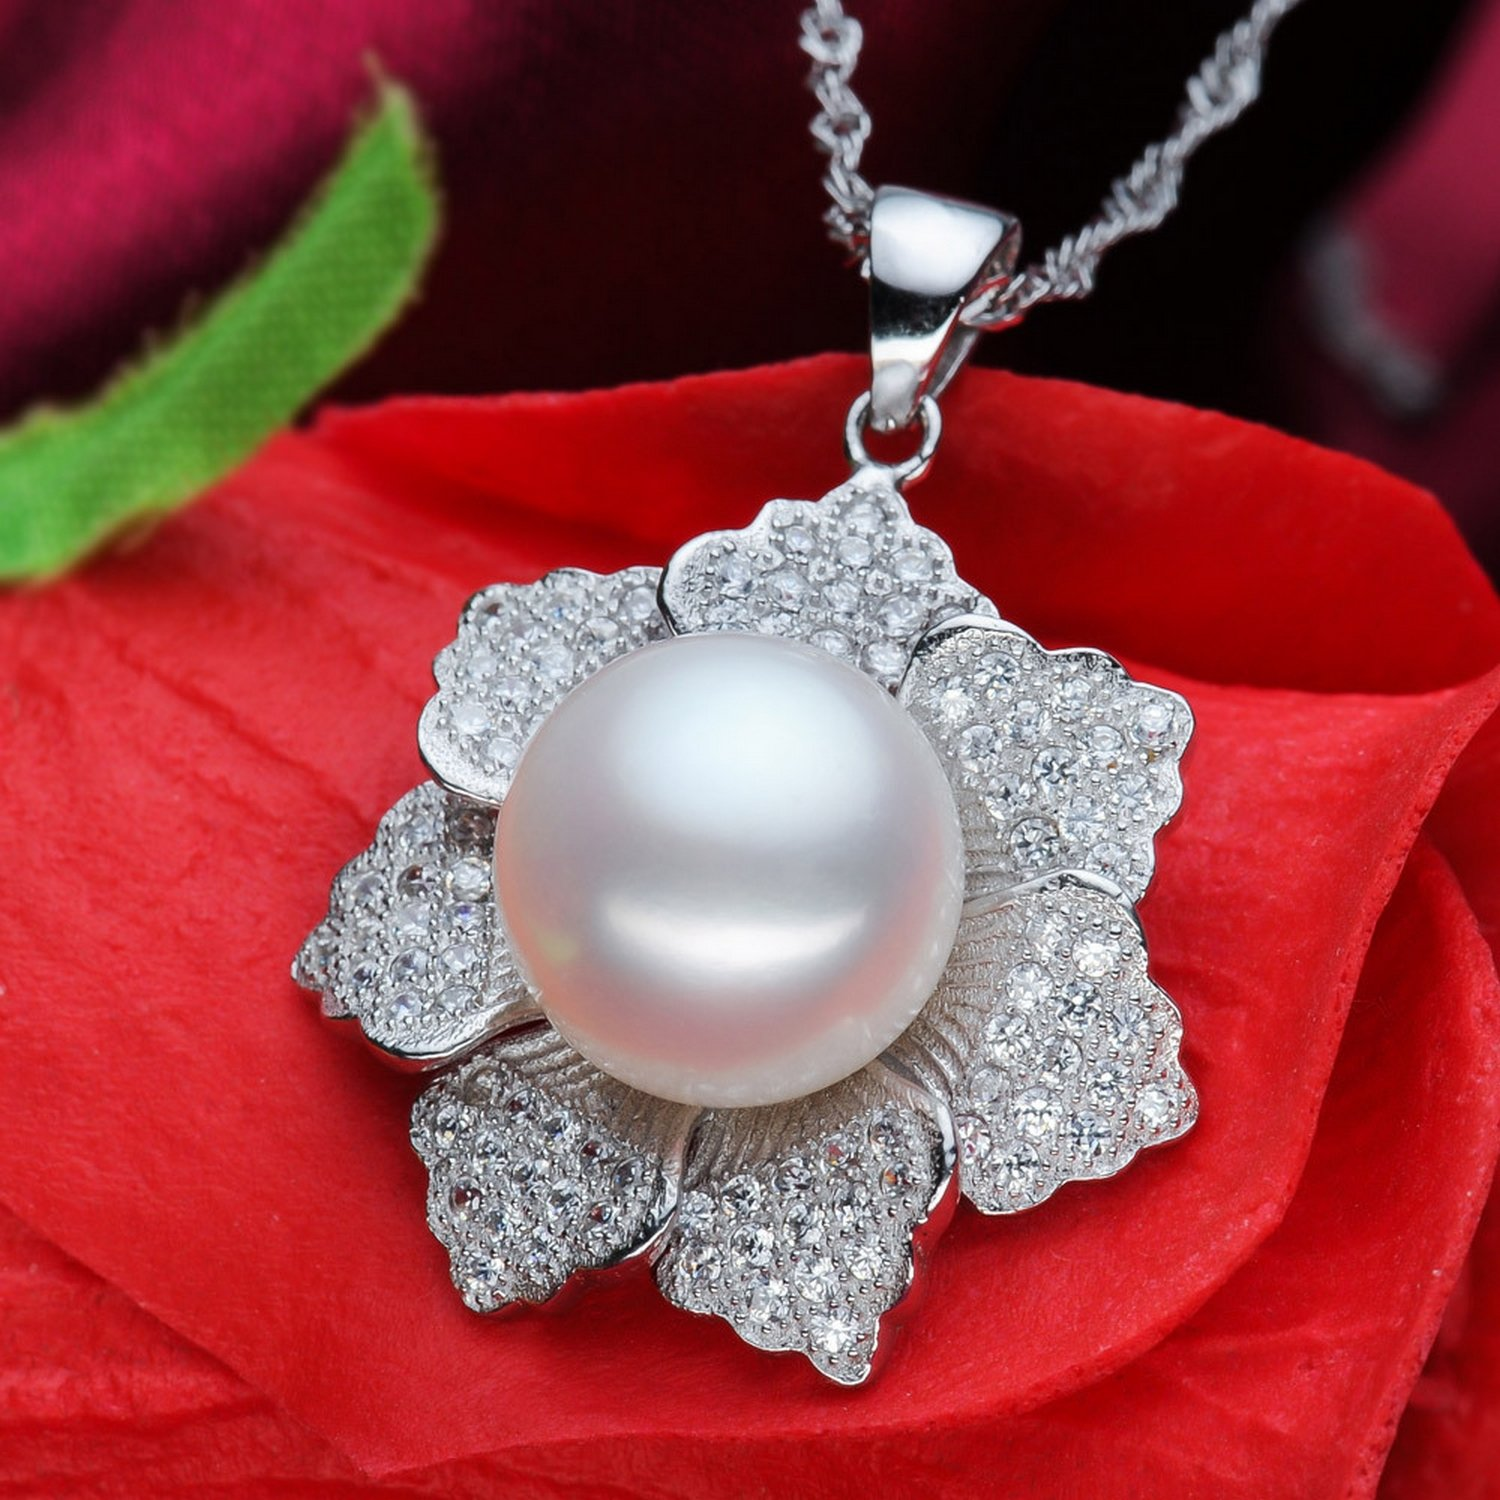 CS-DB Jewelry Silver Flower Design Pearl Chain Charm Pendants Necklaces